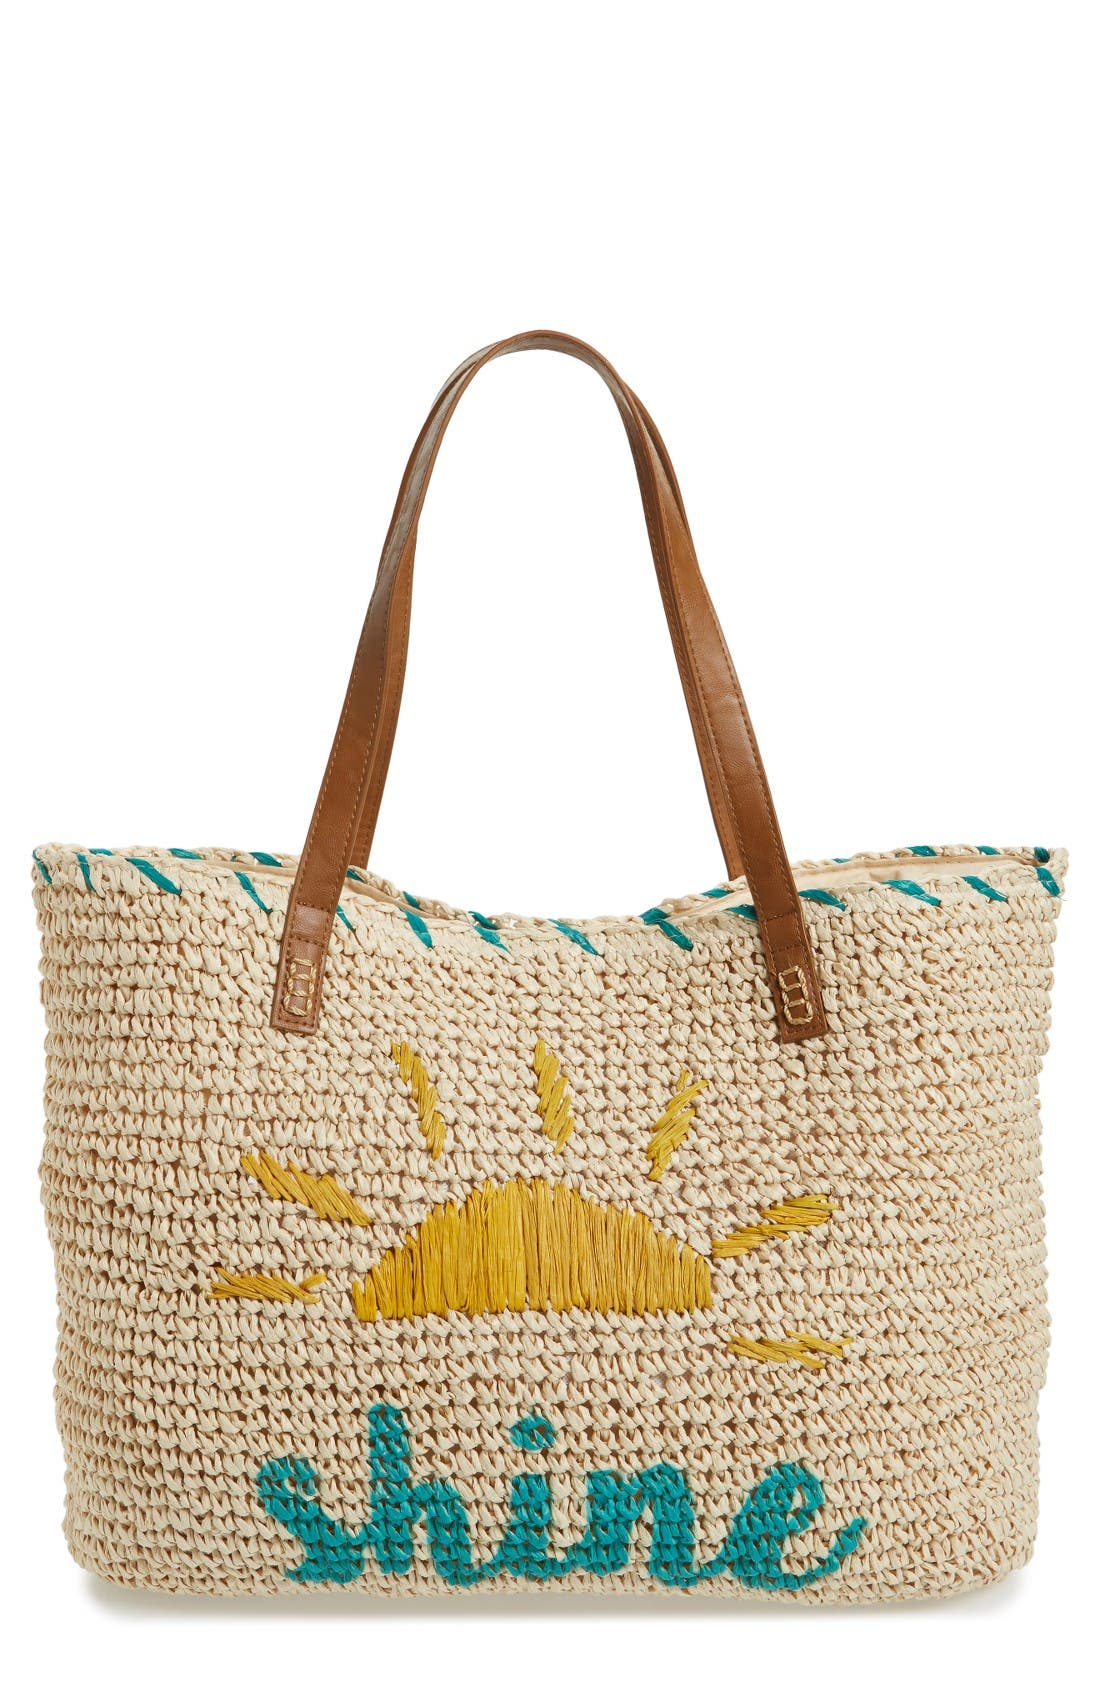 Alternate Image 1 Selected - Nordstrom Shine Straw Tote